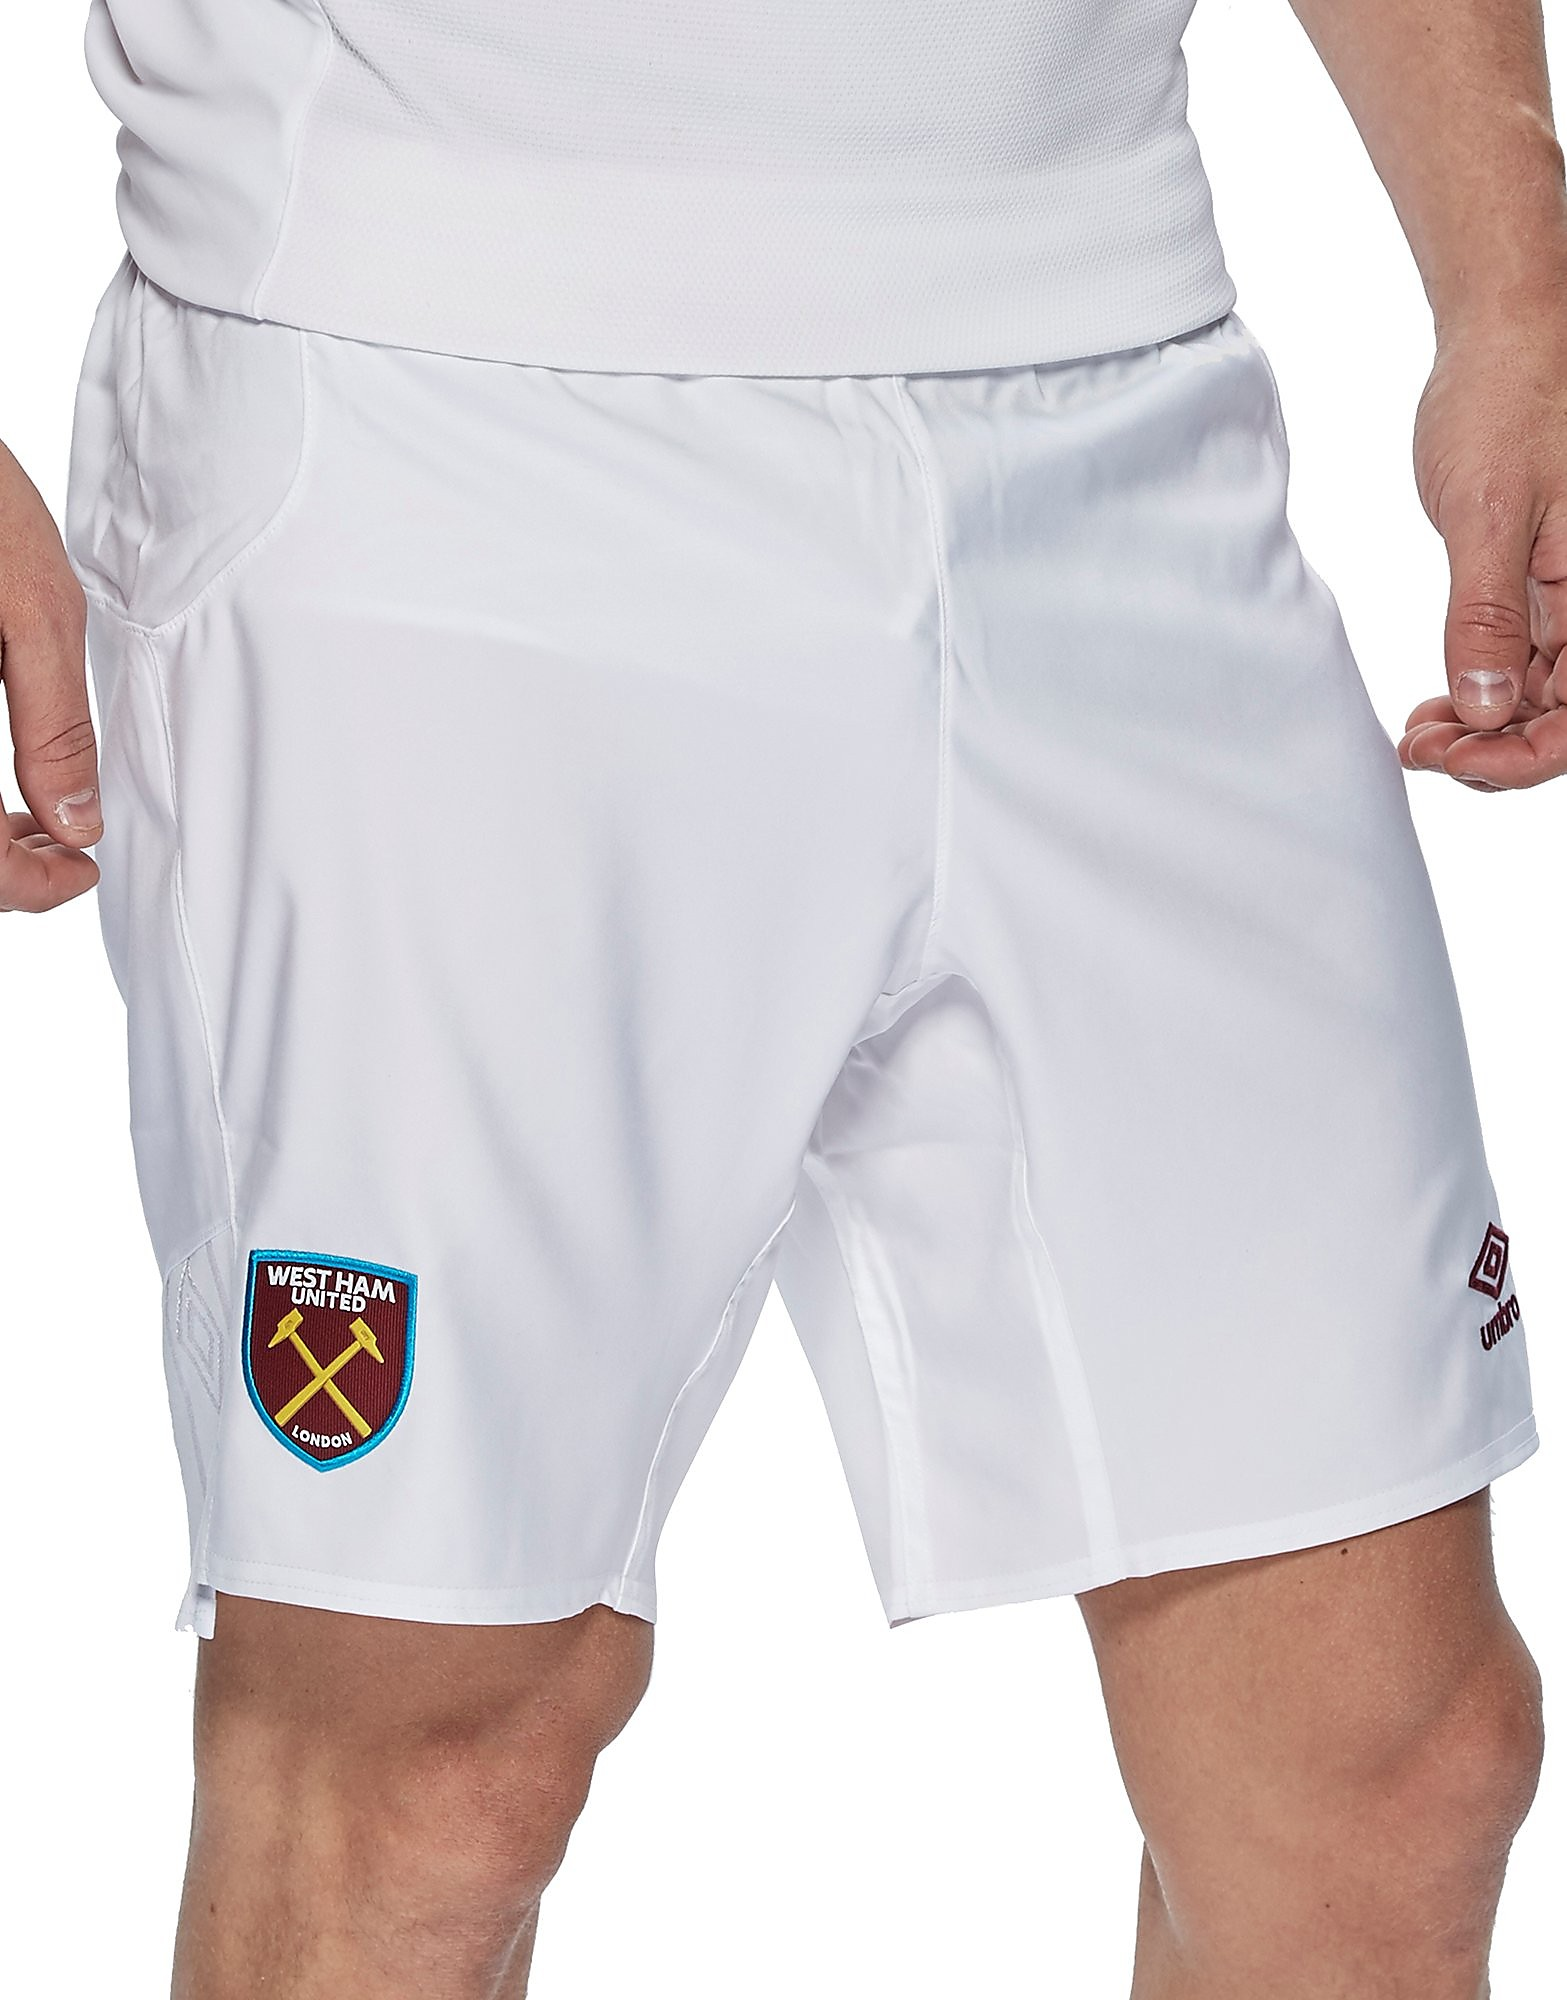 Umbro West Ham United 2017/18 Home Shorts